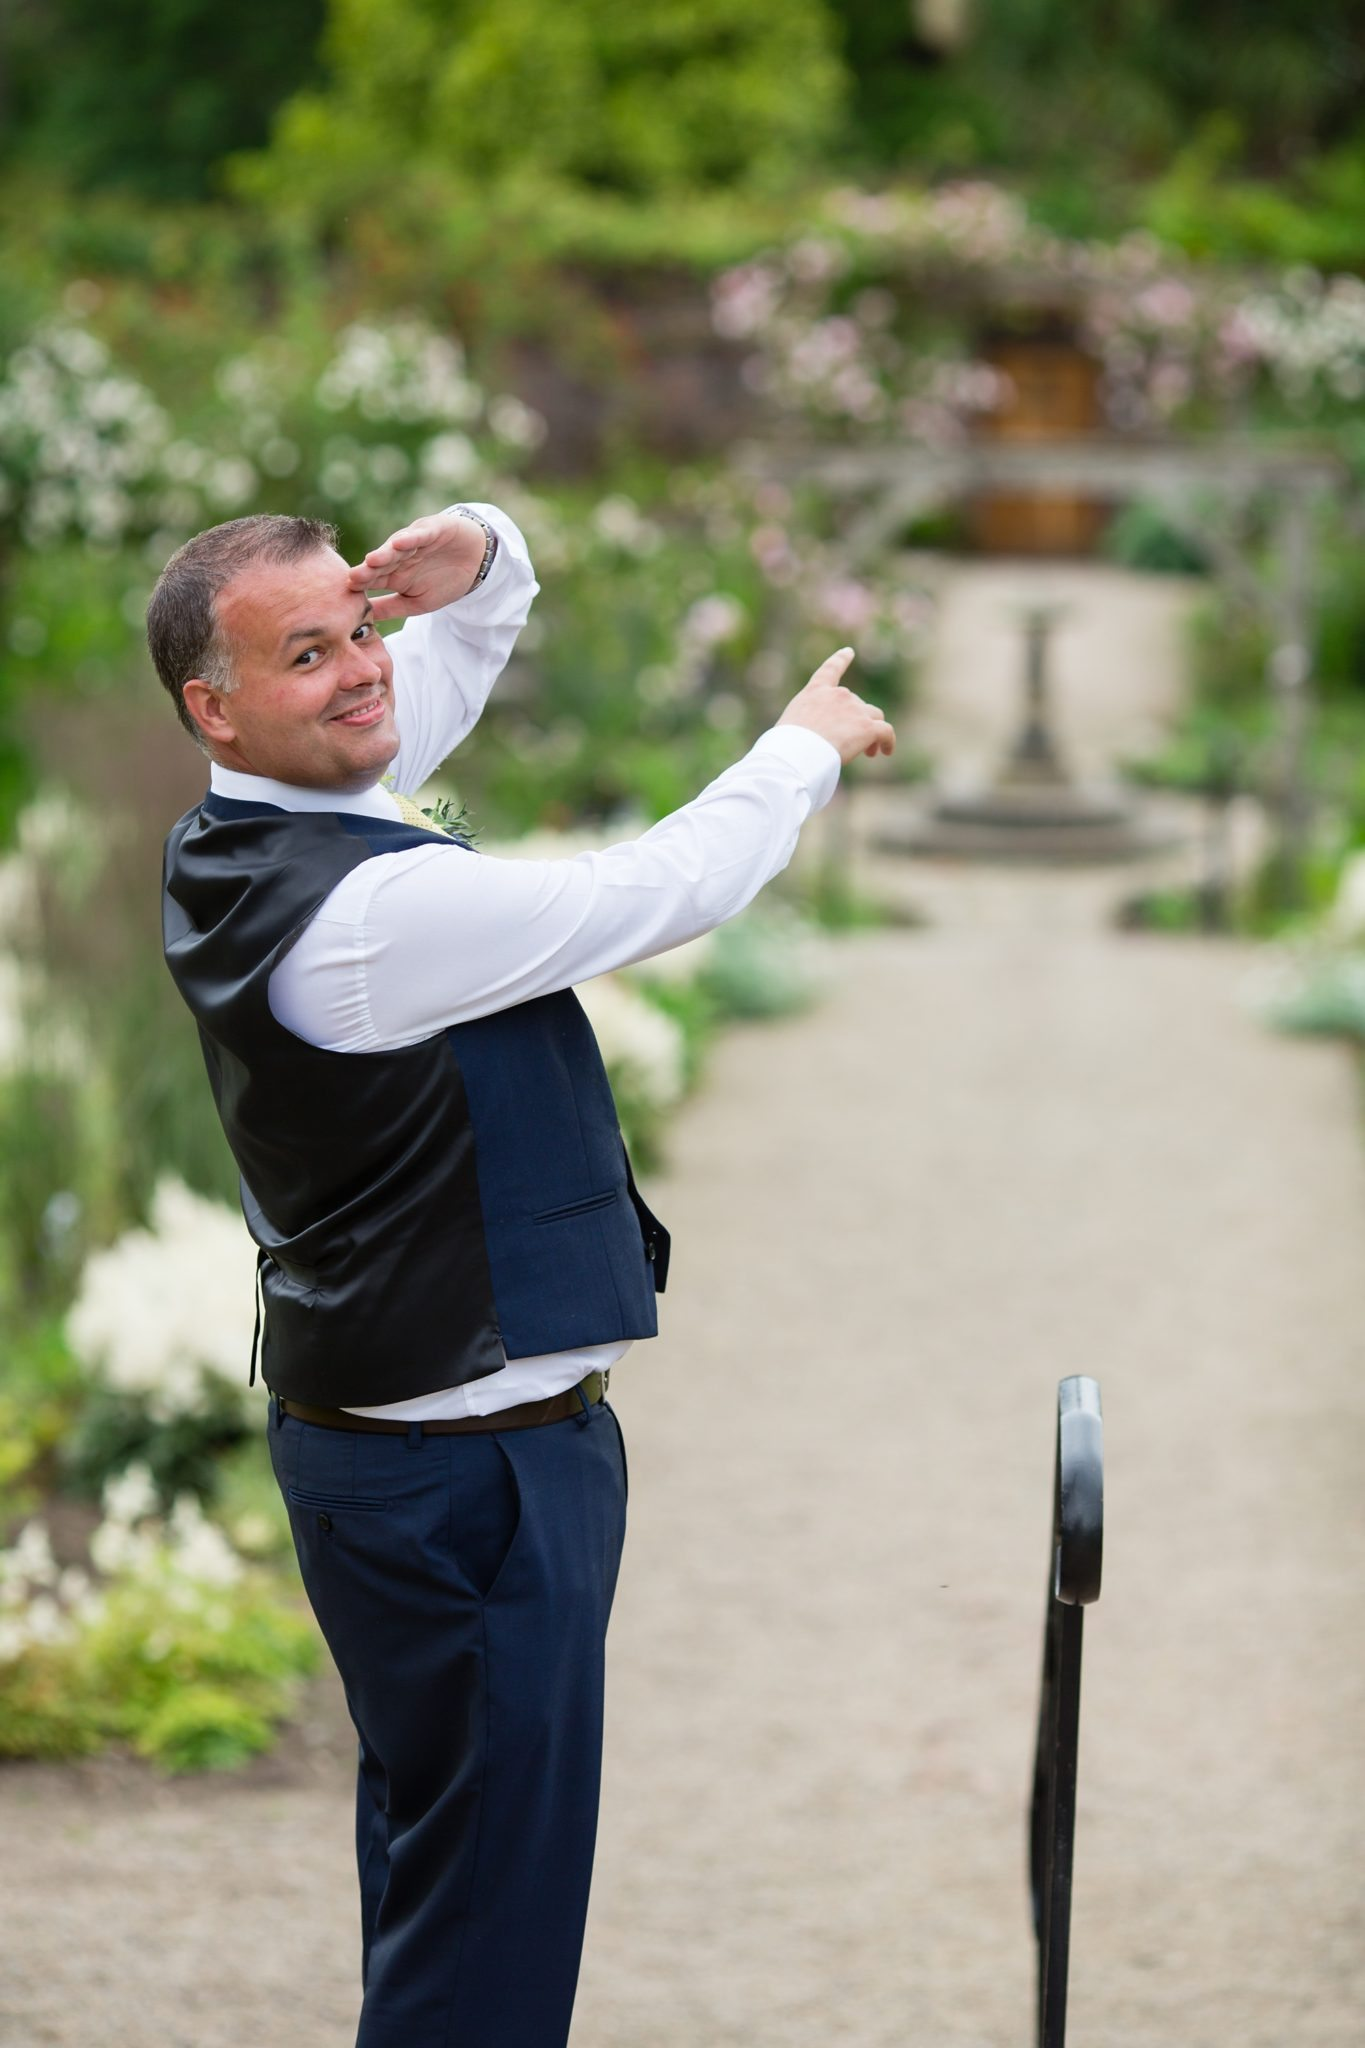 wedding guest pointing off camera and looking at camera with cane